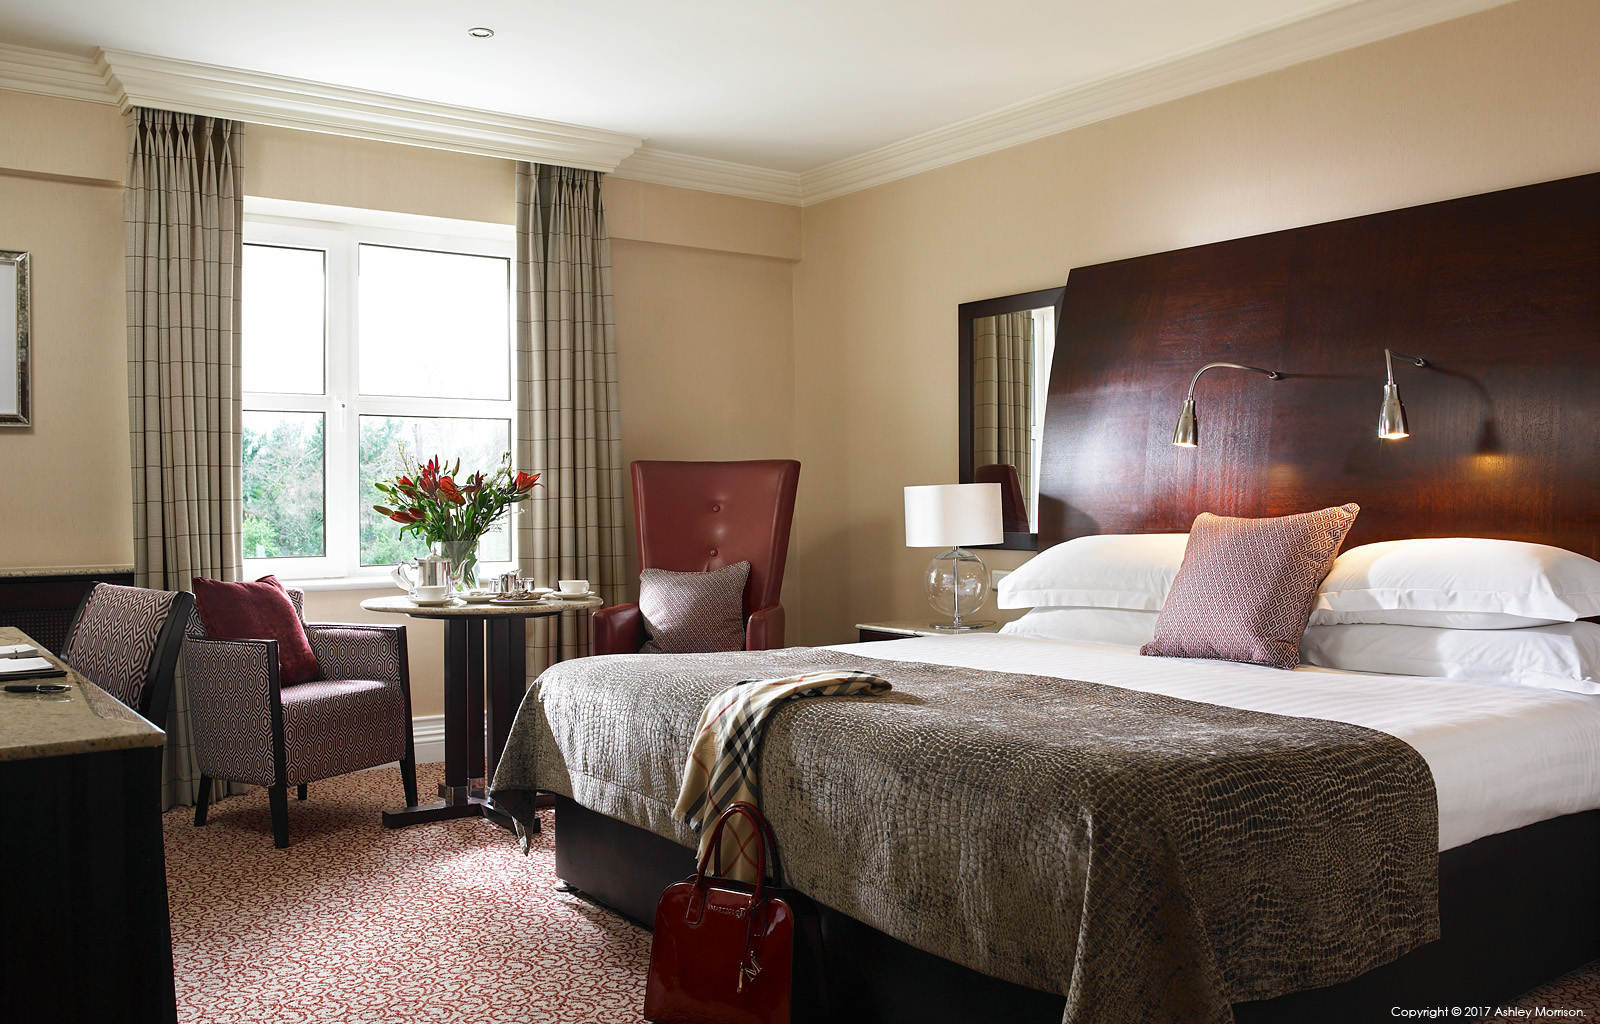 Classic King bedroom in the Killarney Park Hotel in the Irish County of Kerry.